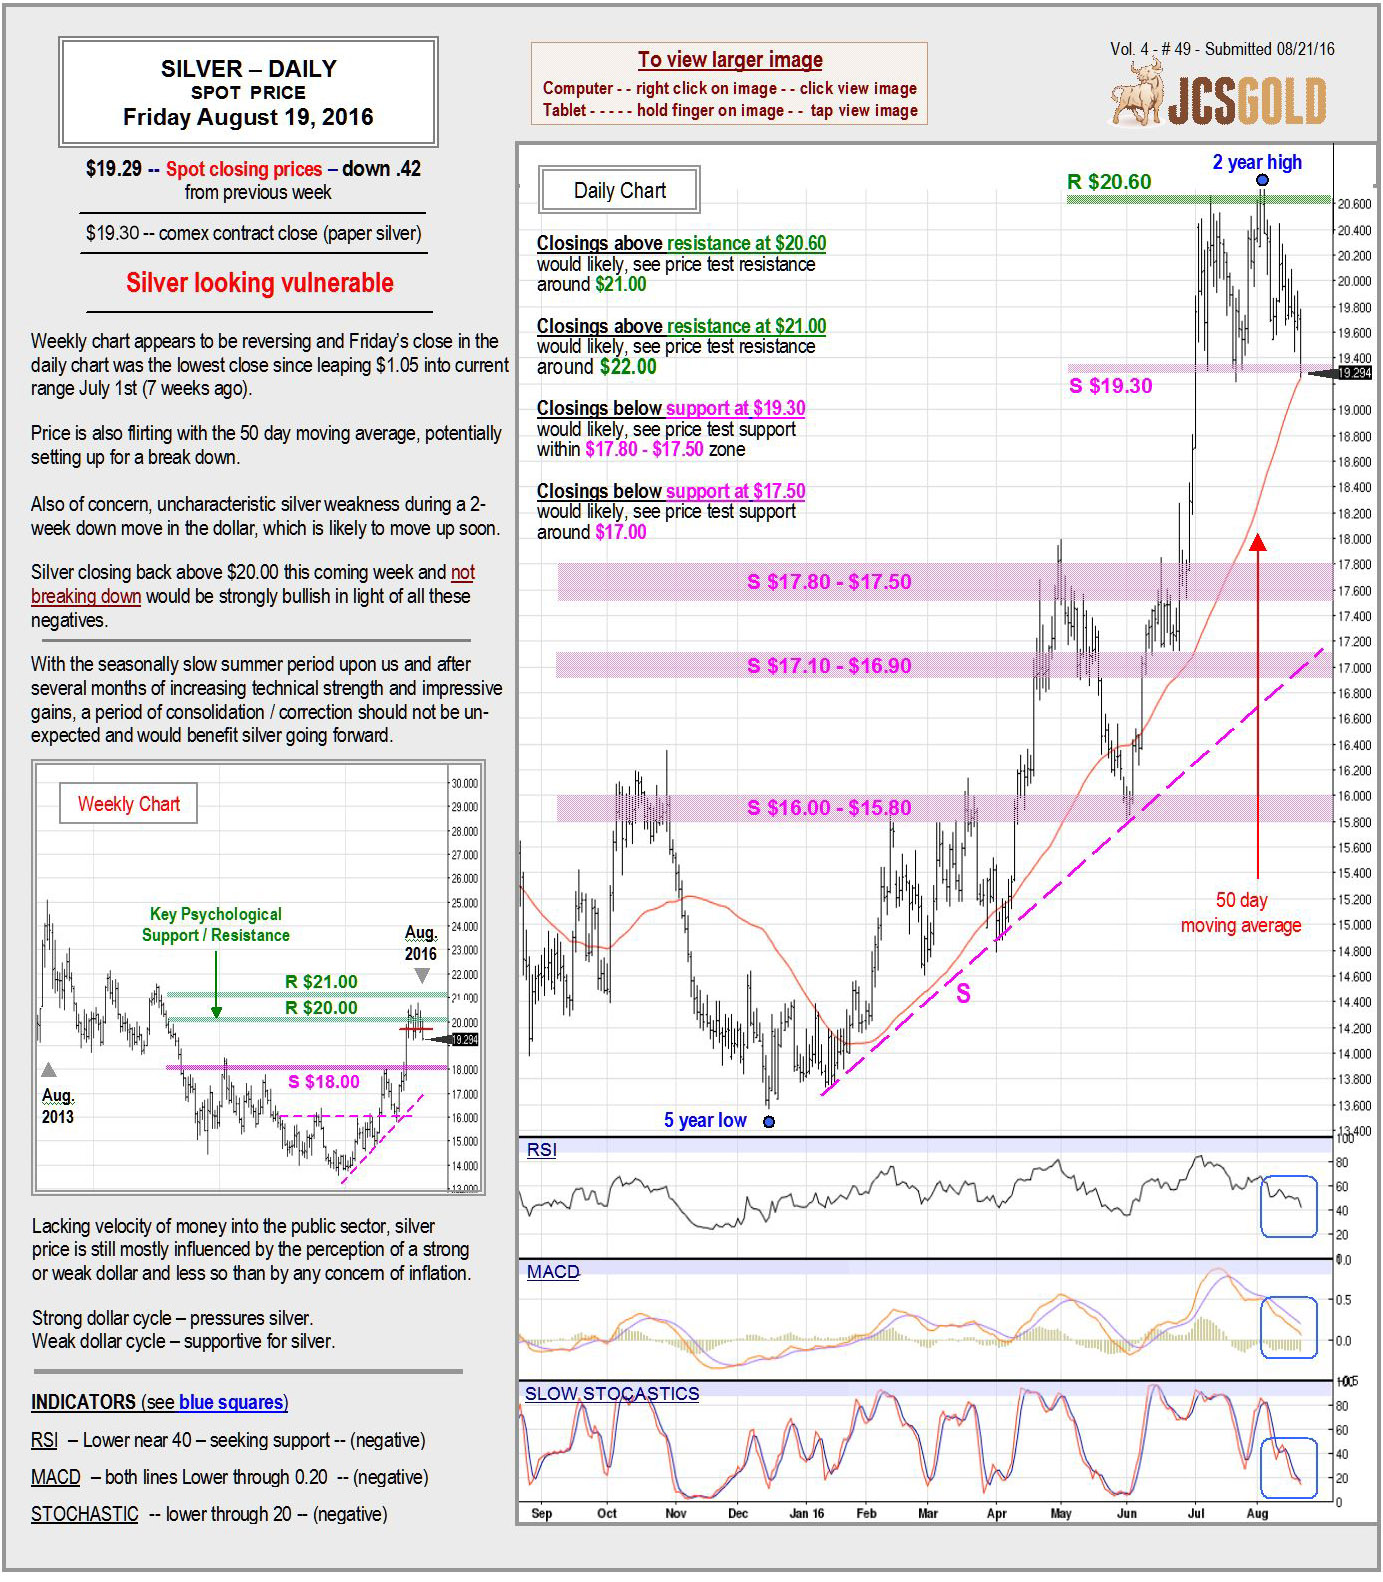 August 19, 2016 chart & commentary